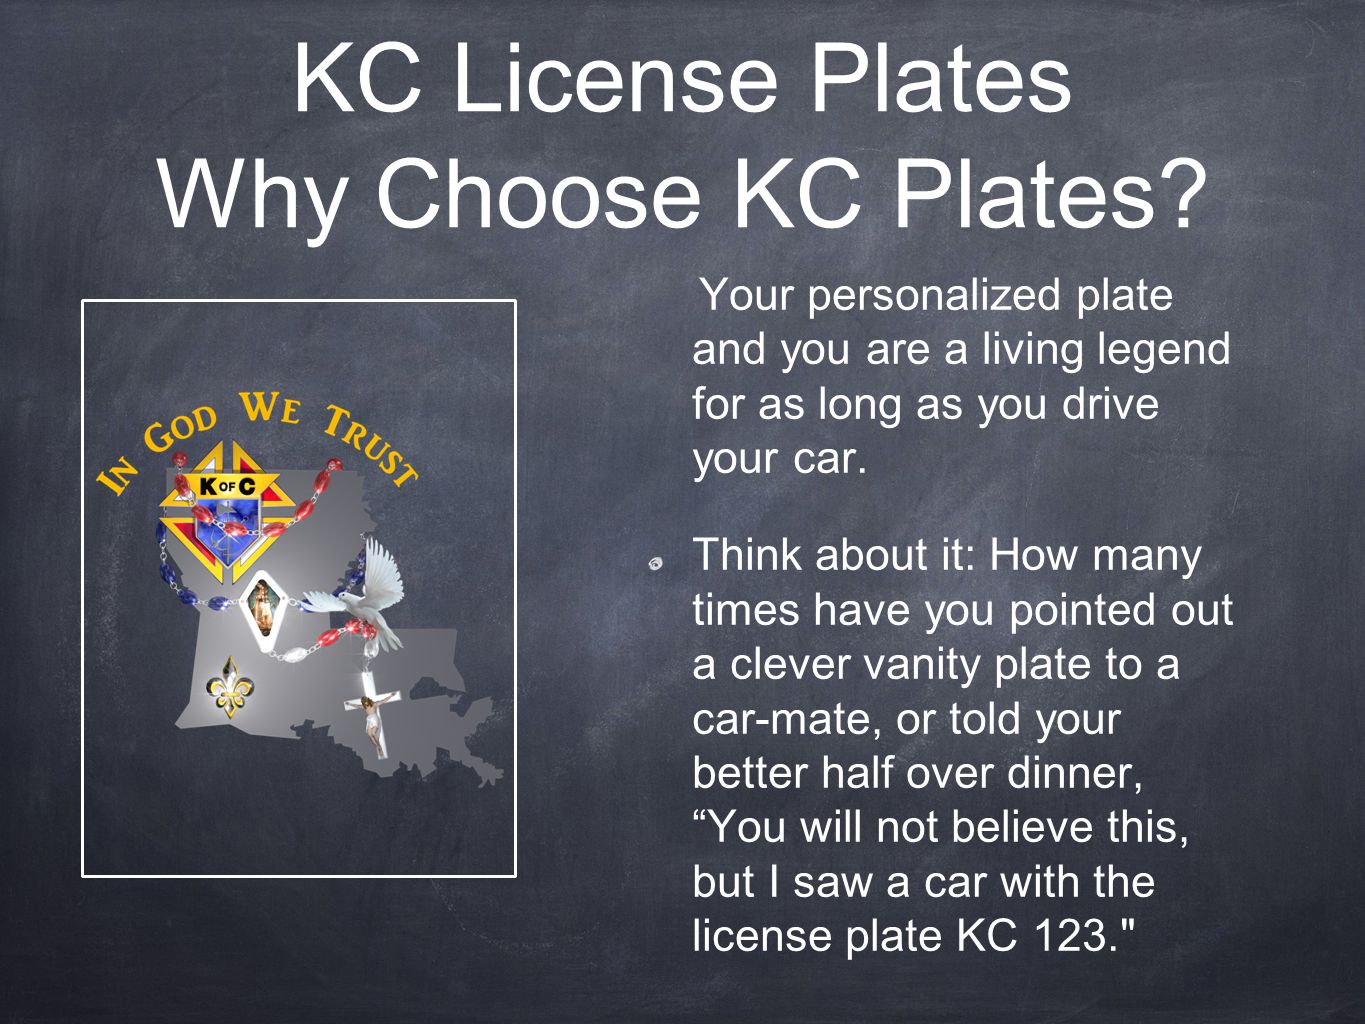 KC License Plates Why Choose KC Plates? Your personalized plate and you are a living legend for as long as you drive your car. Think about it: How man